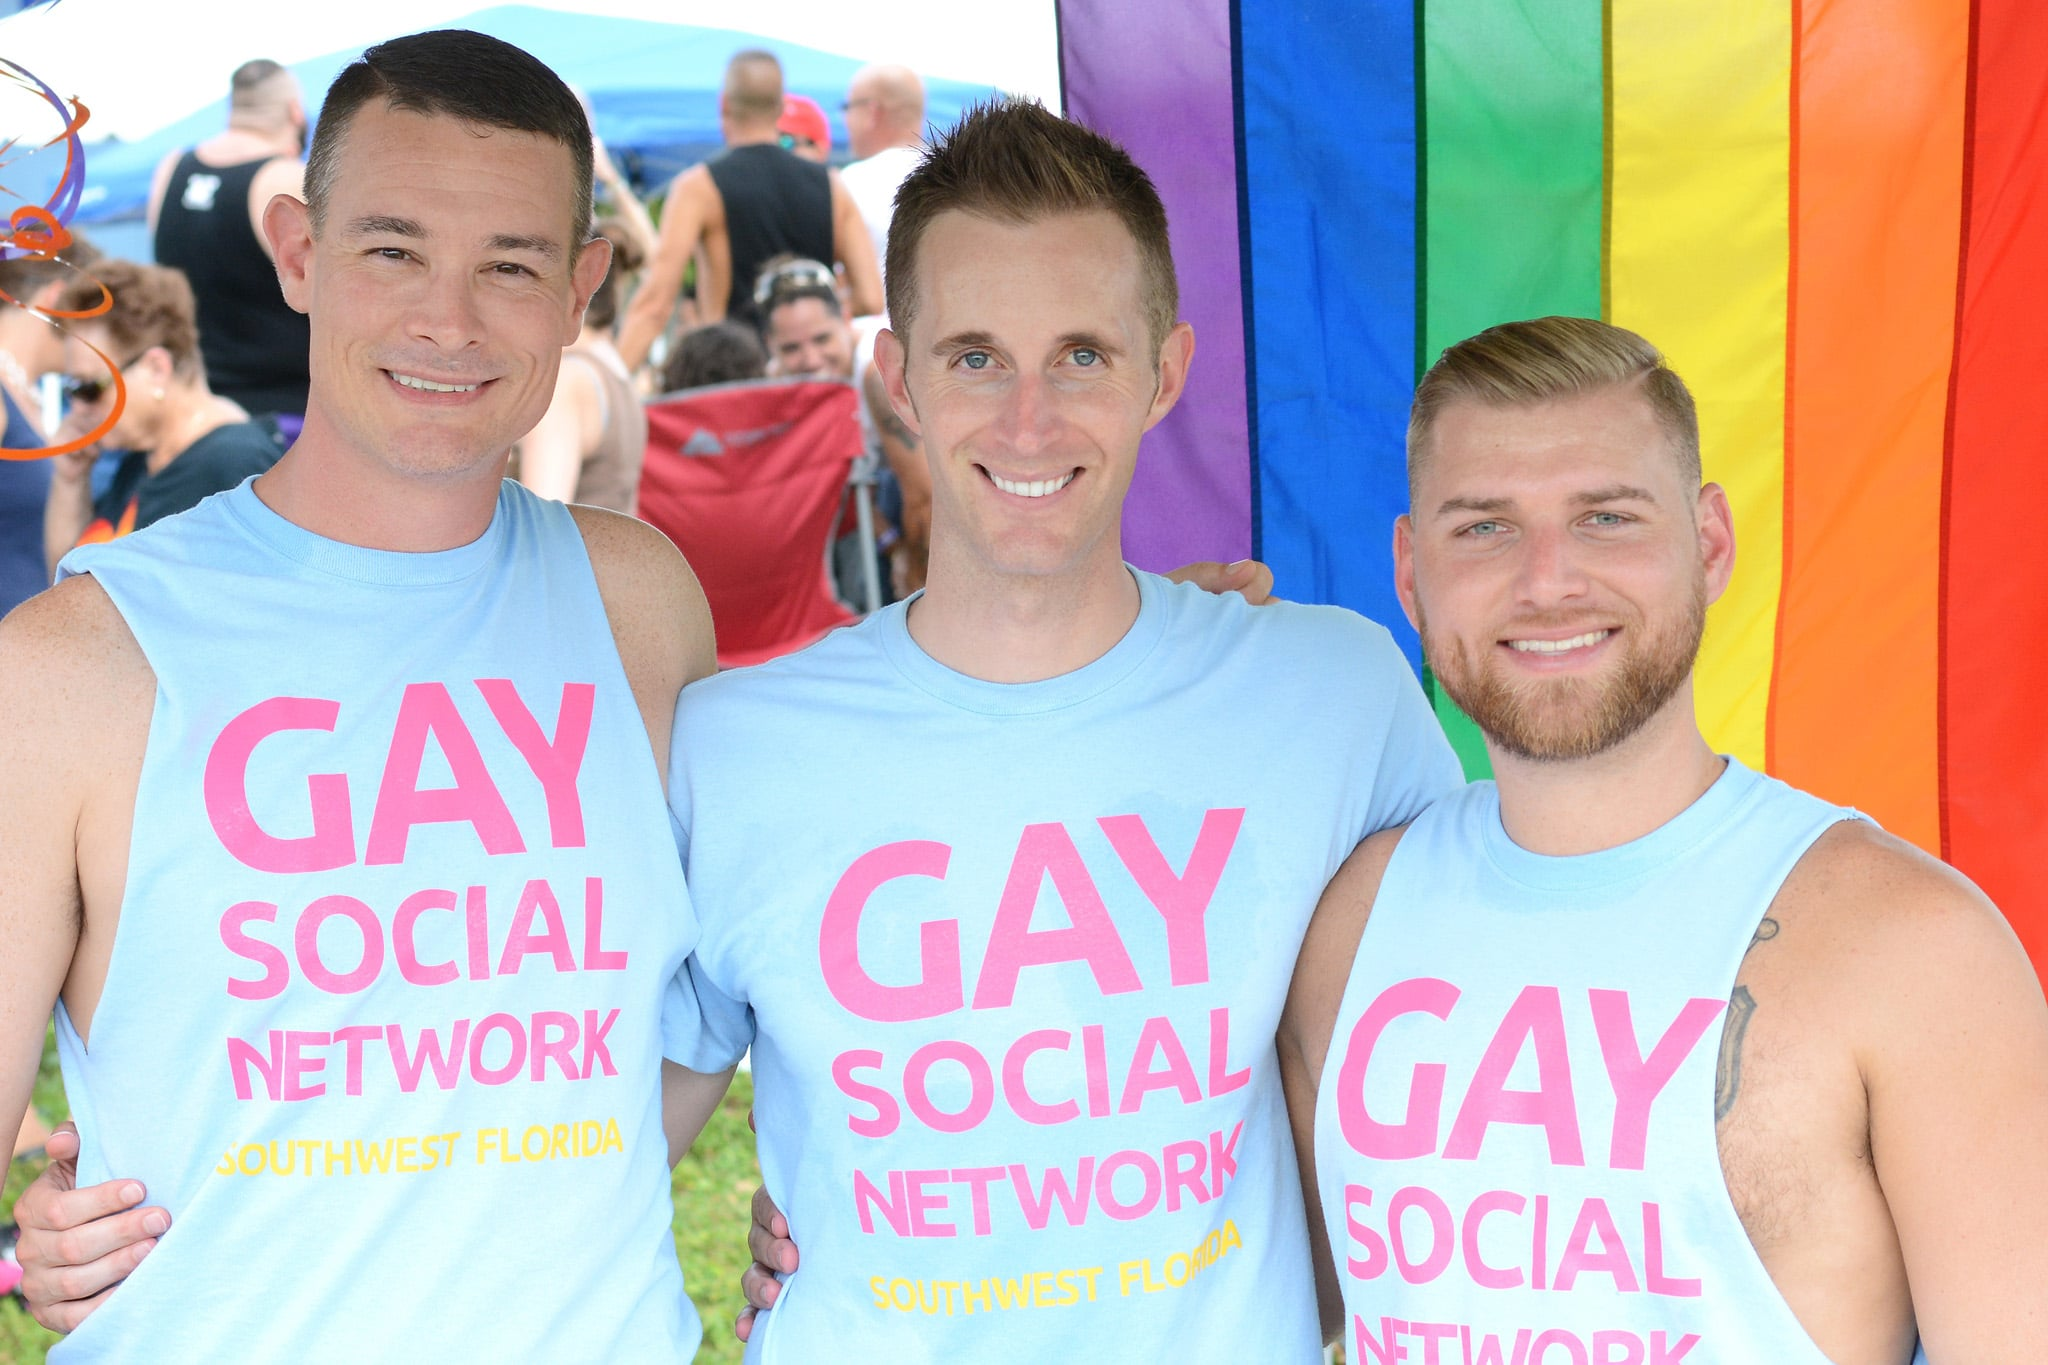 Welcome to GSN. Gay Social Network of Southwest Florida